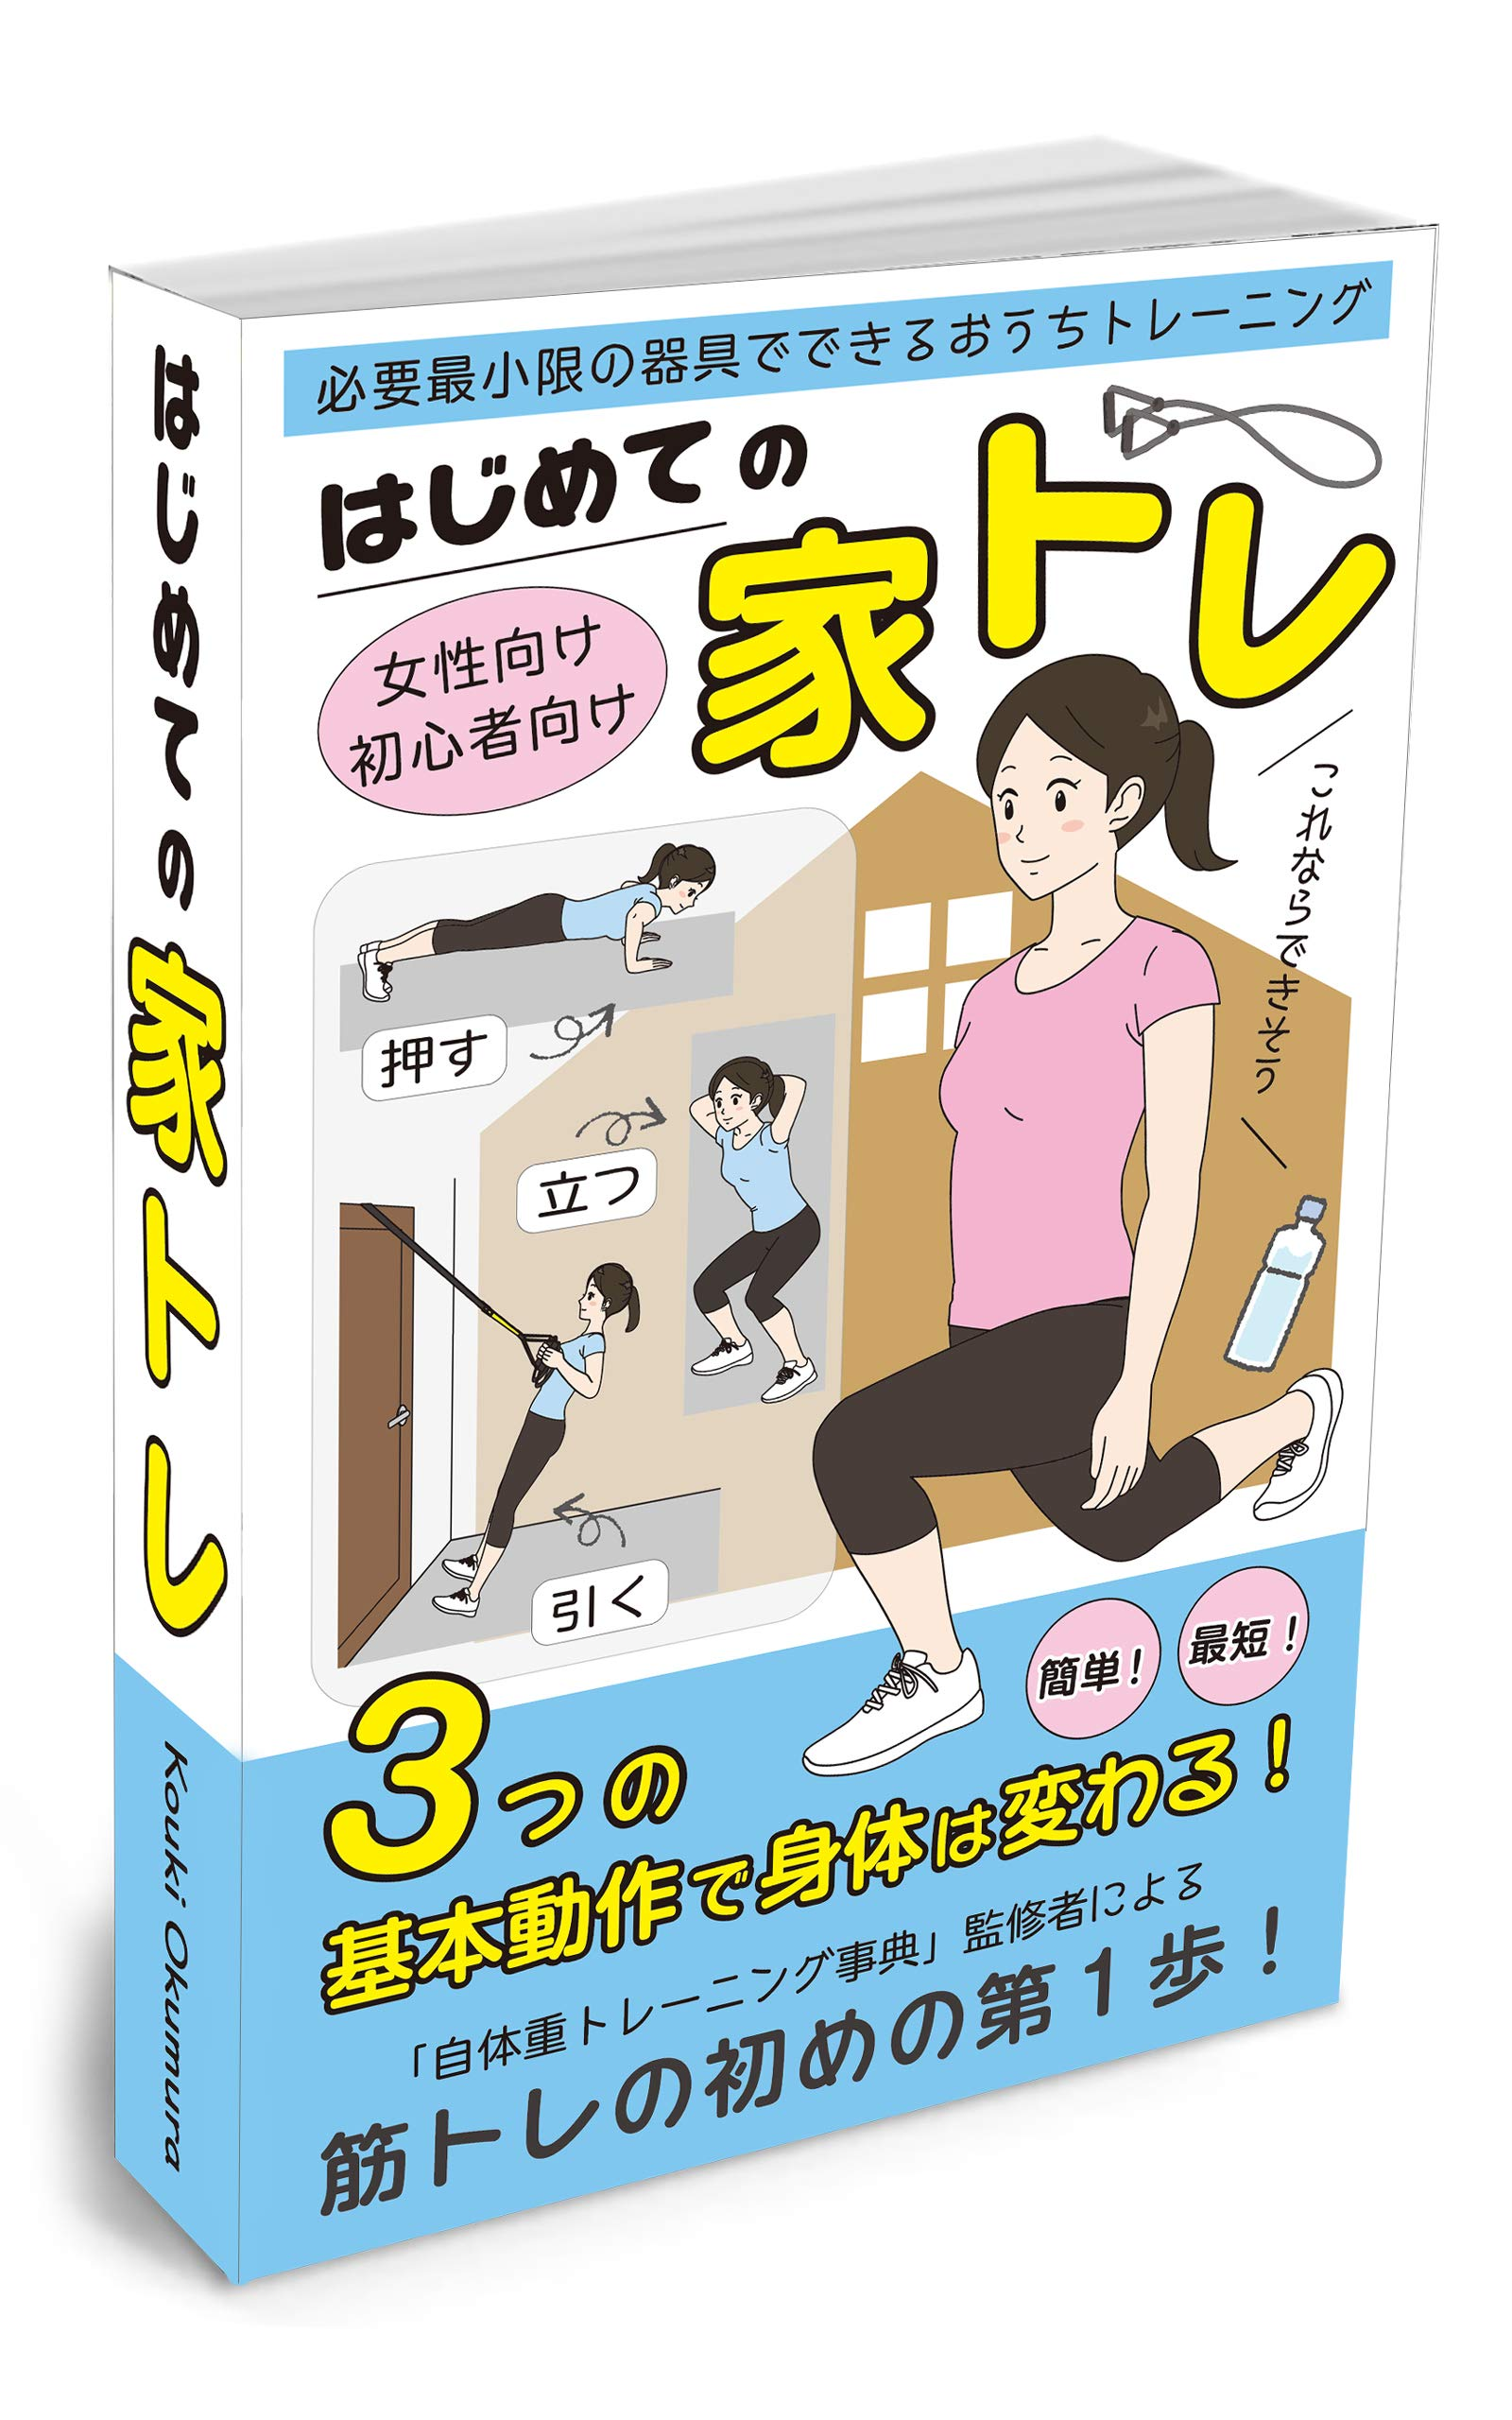 Image OfHome Workout For Beginner: 3 Excercises Change Body (Japanese Edition)